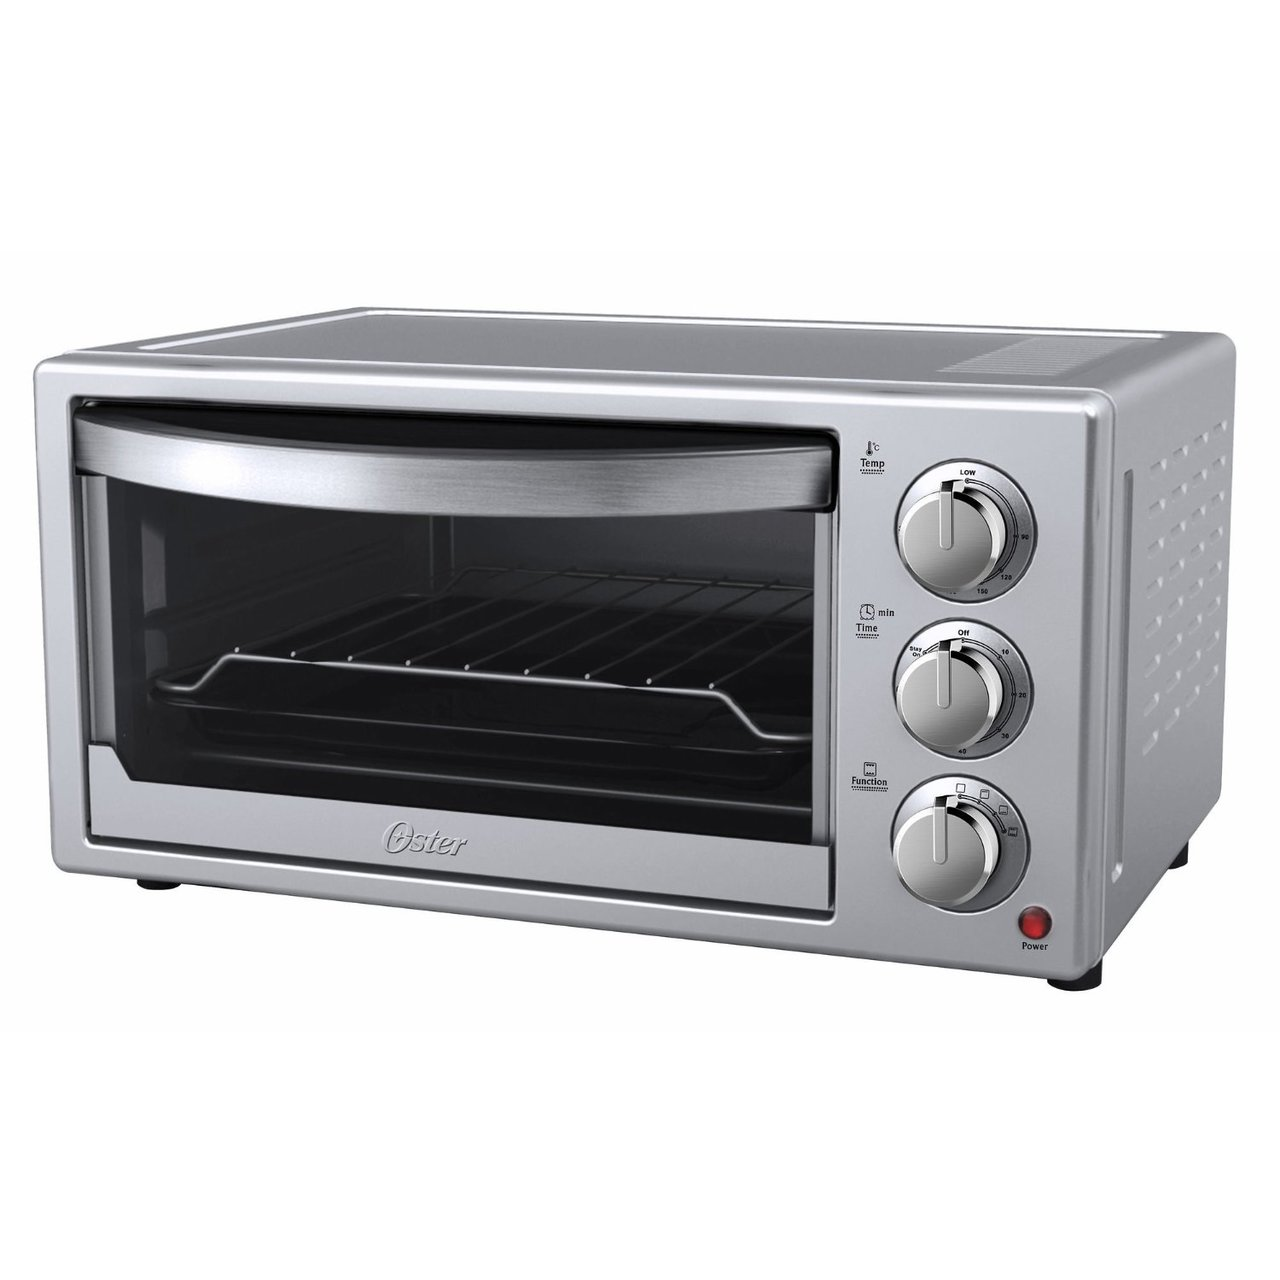 Toasters and Ovens in kitchen